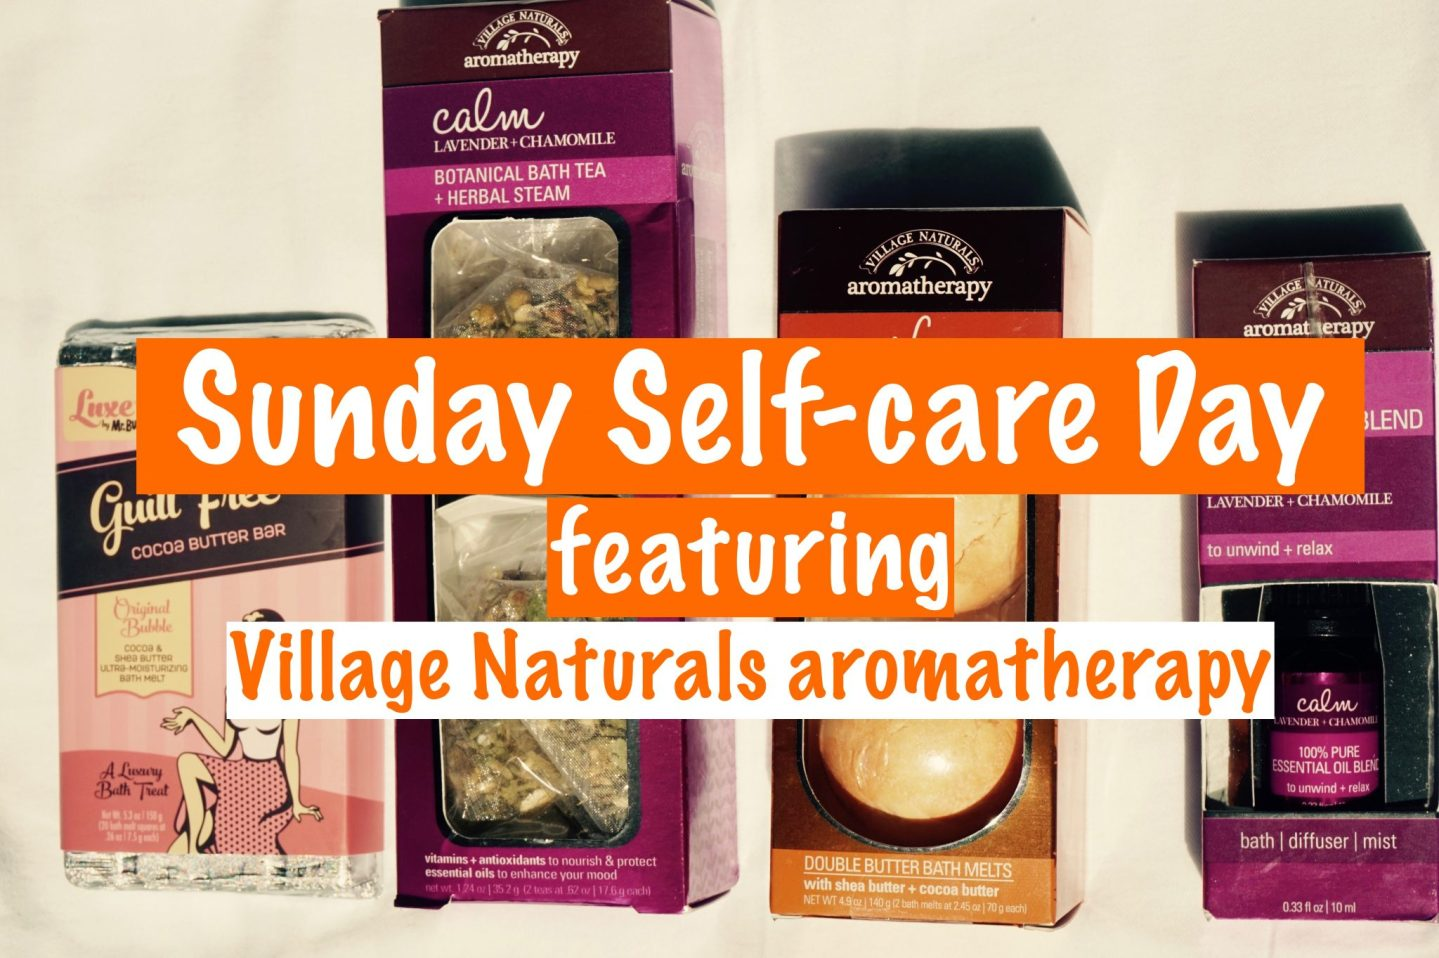 Sunday Self-care Day featuring Village Naturals Aromatherapy